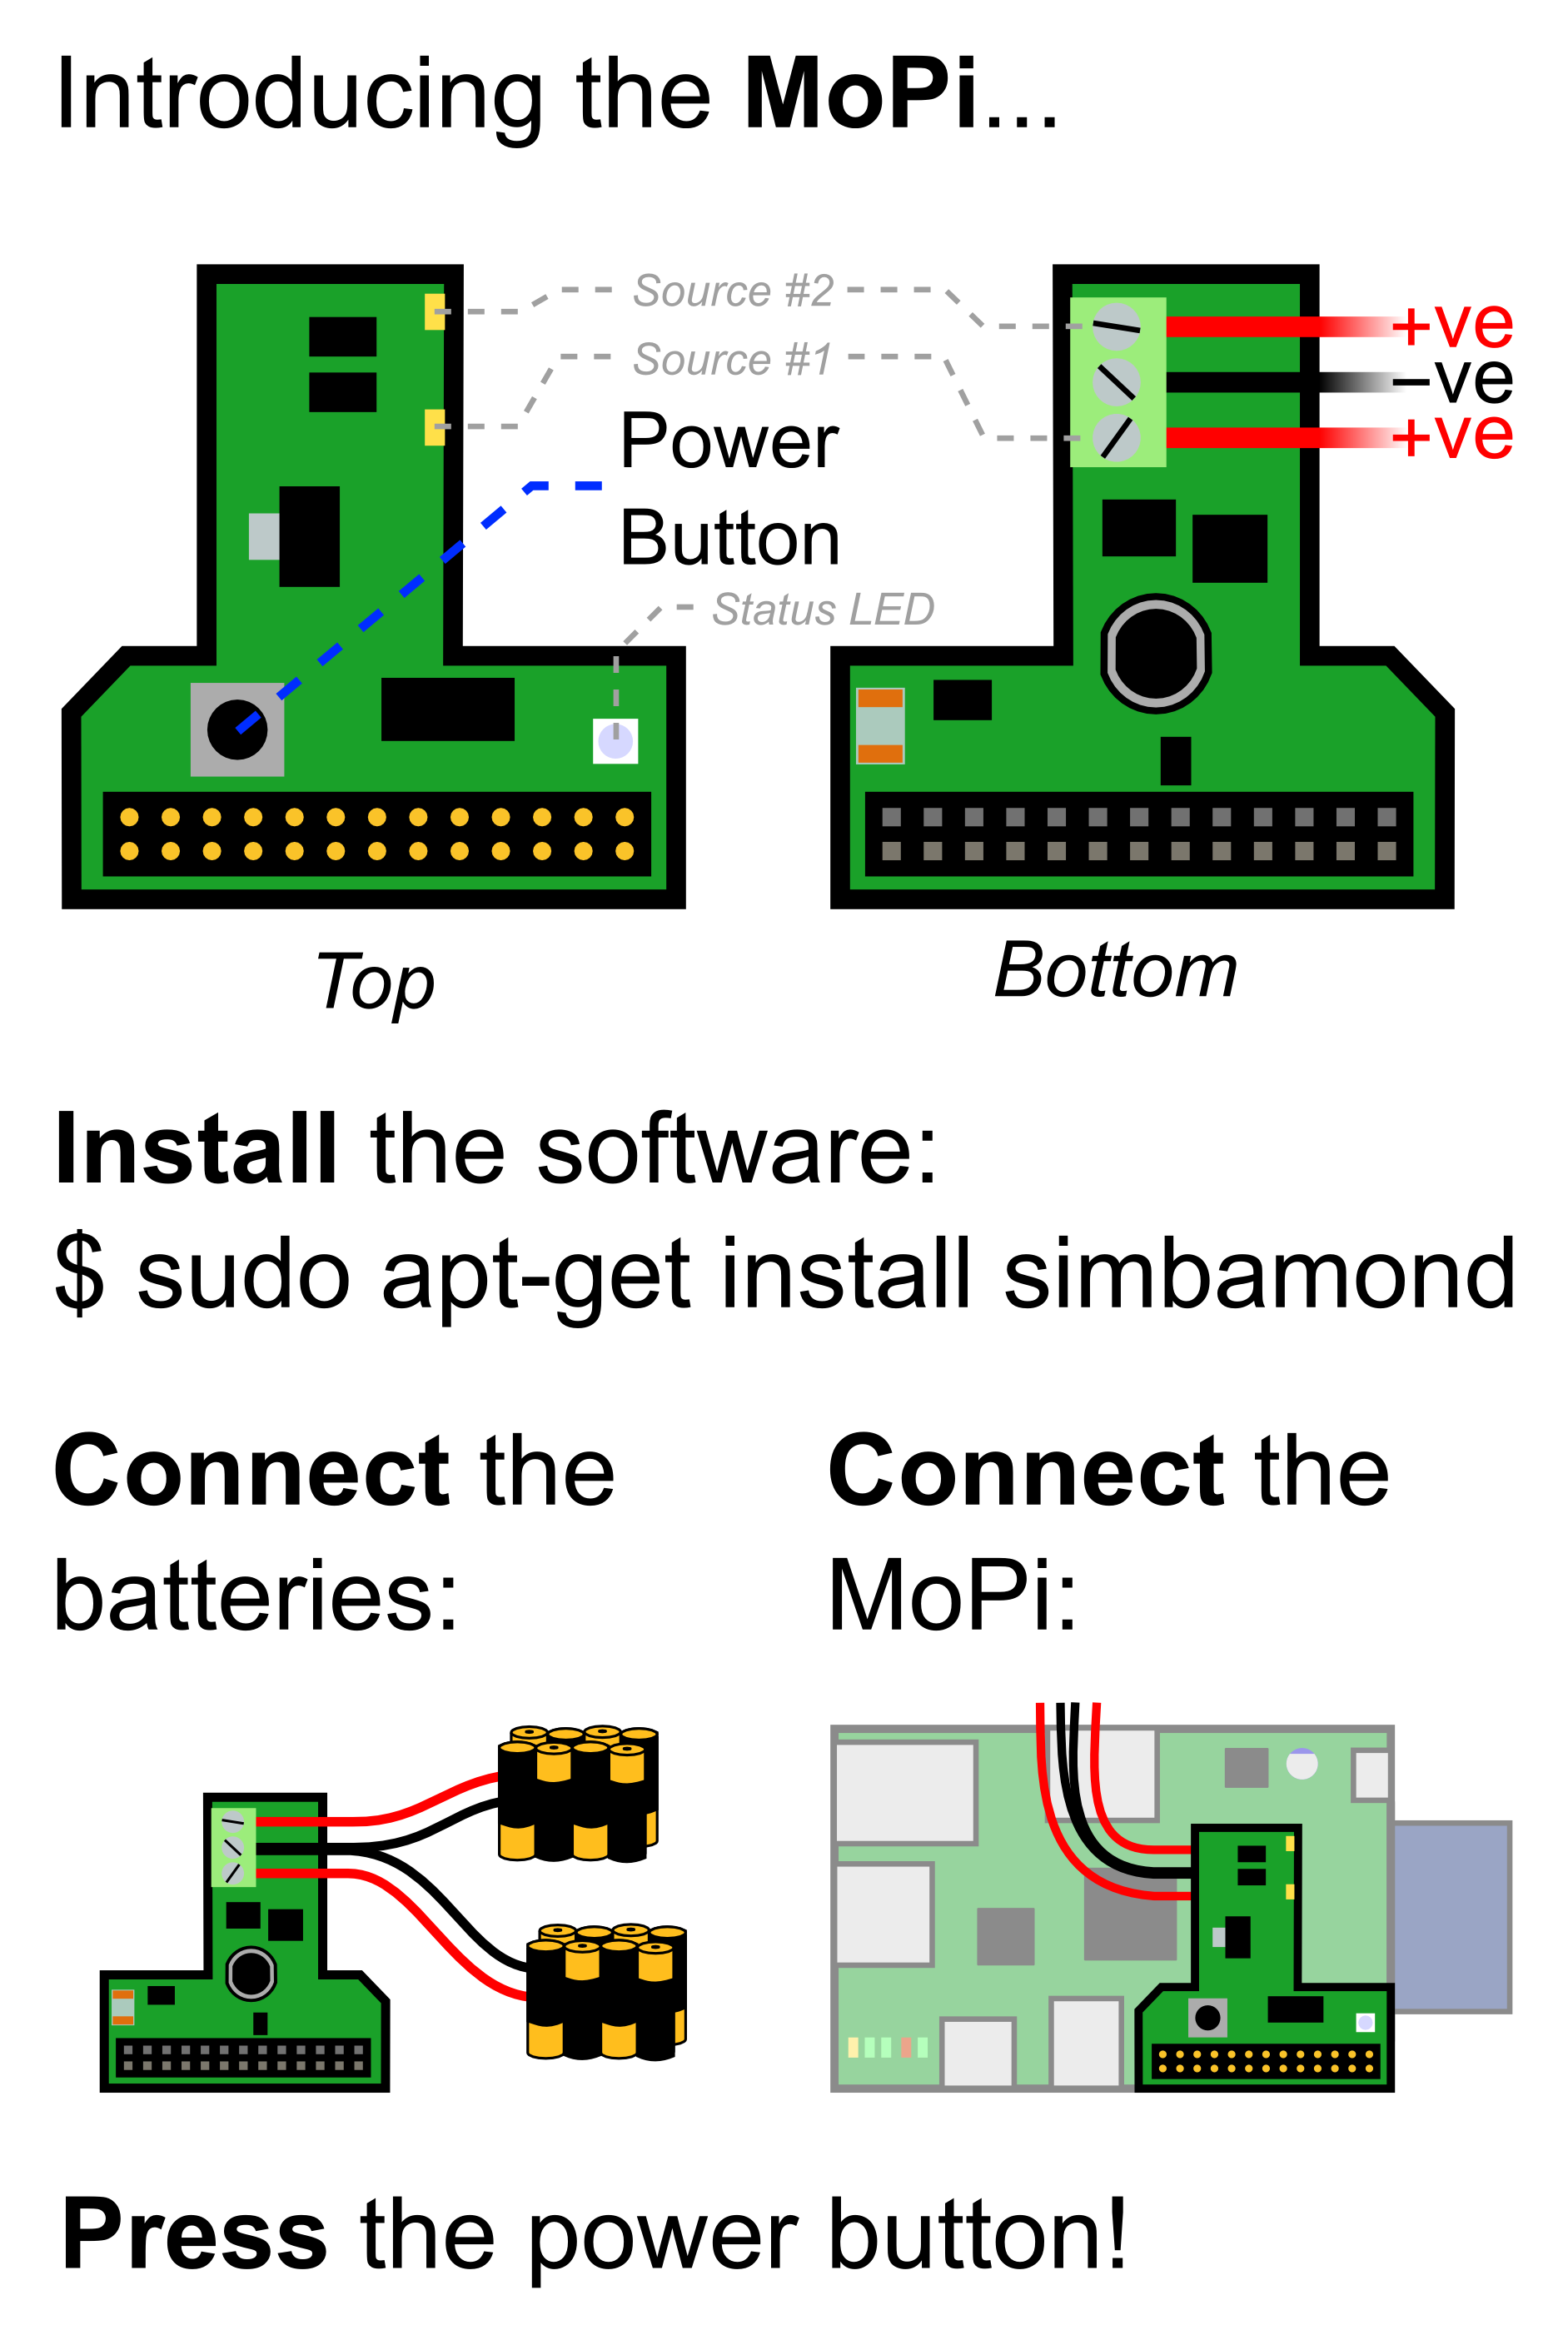 Mopi Hot Swap Mobile Power For The Pi Diagram Fpv Wiring Basic Lithium Ion Battery Charger Circuit Quick Start Guide